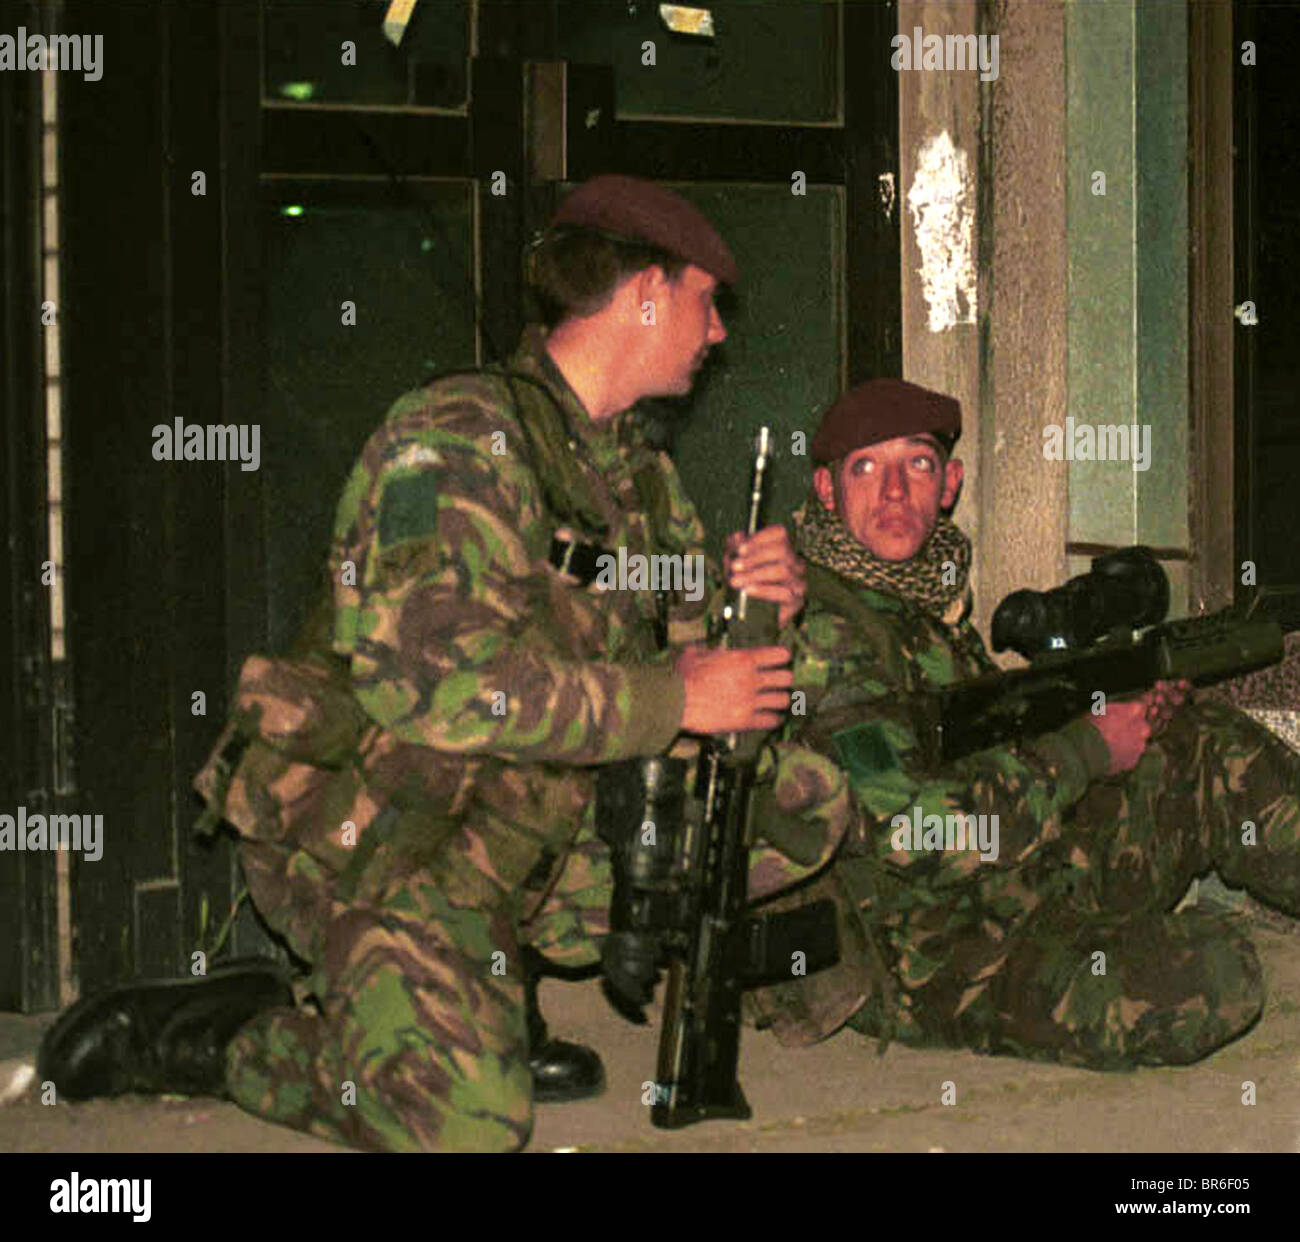 British Paratroopers on night patrol in Pristina, Kosovo. Stock Photo